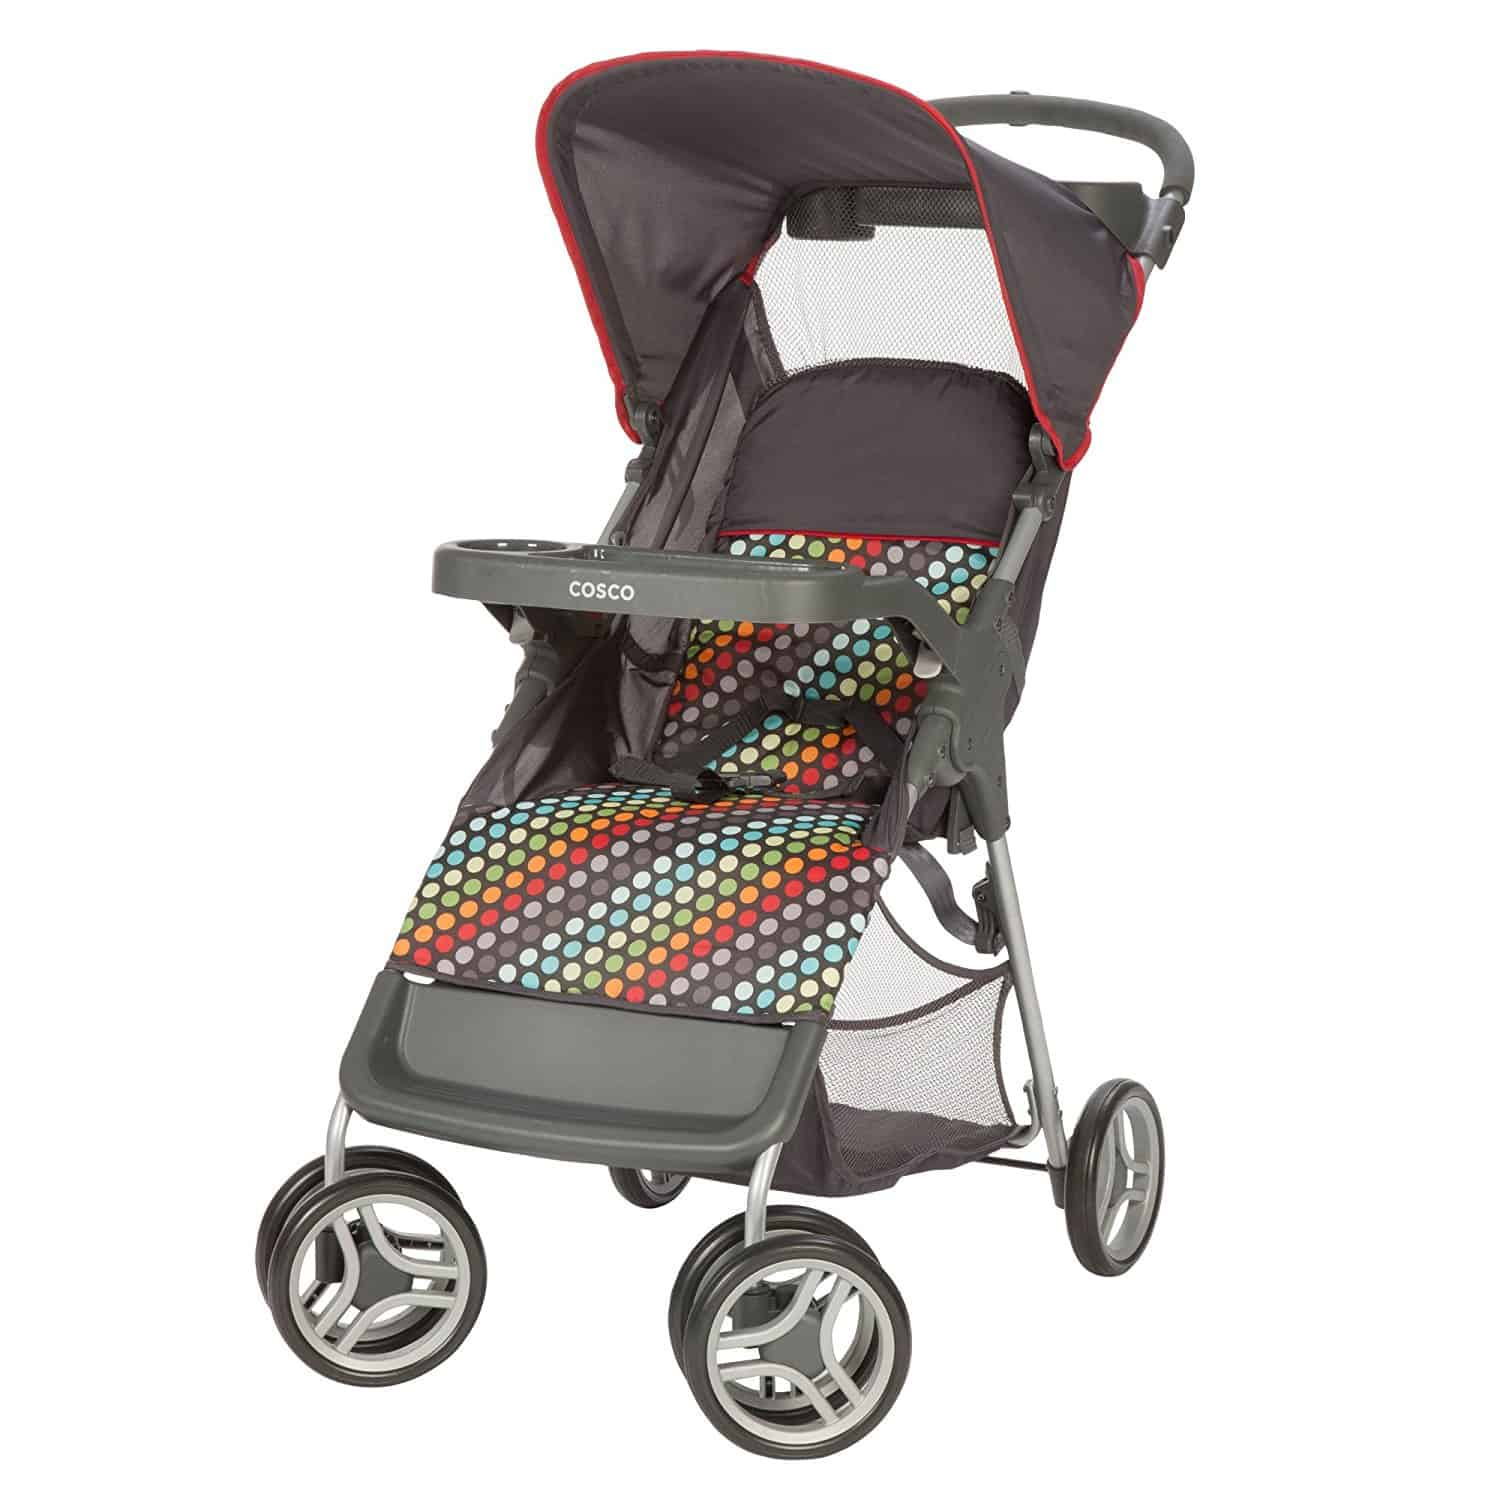 Cosco Lift and Stroll stroller